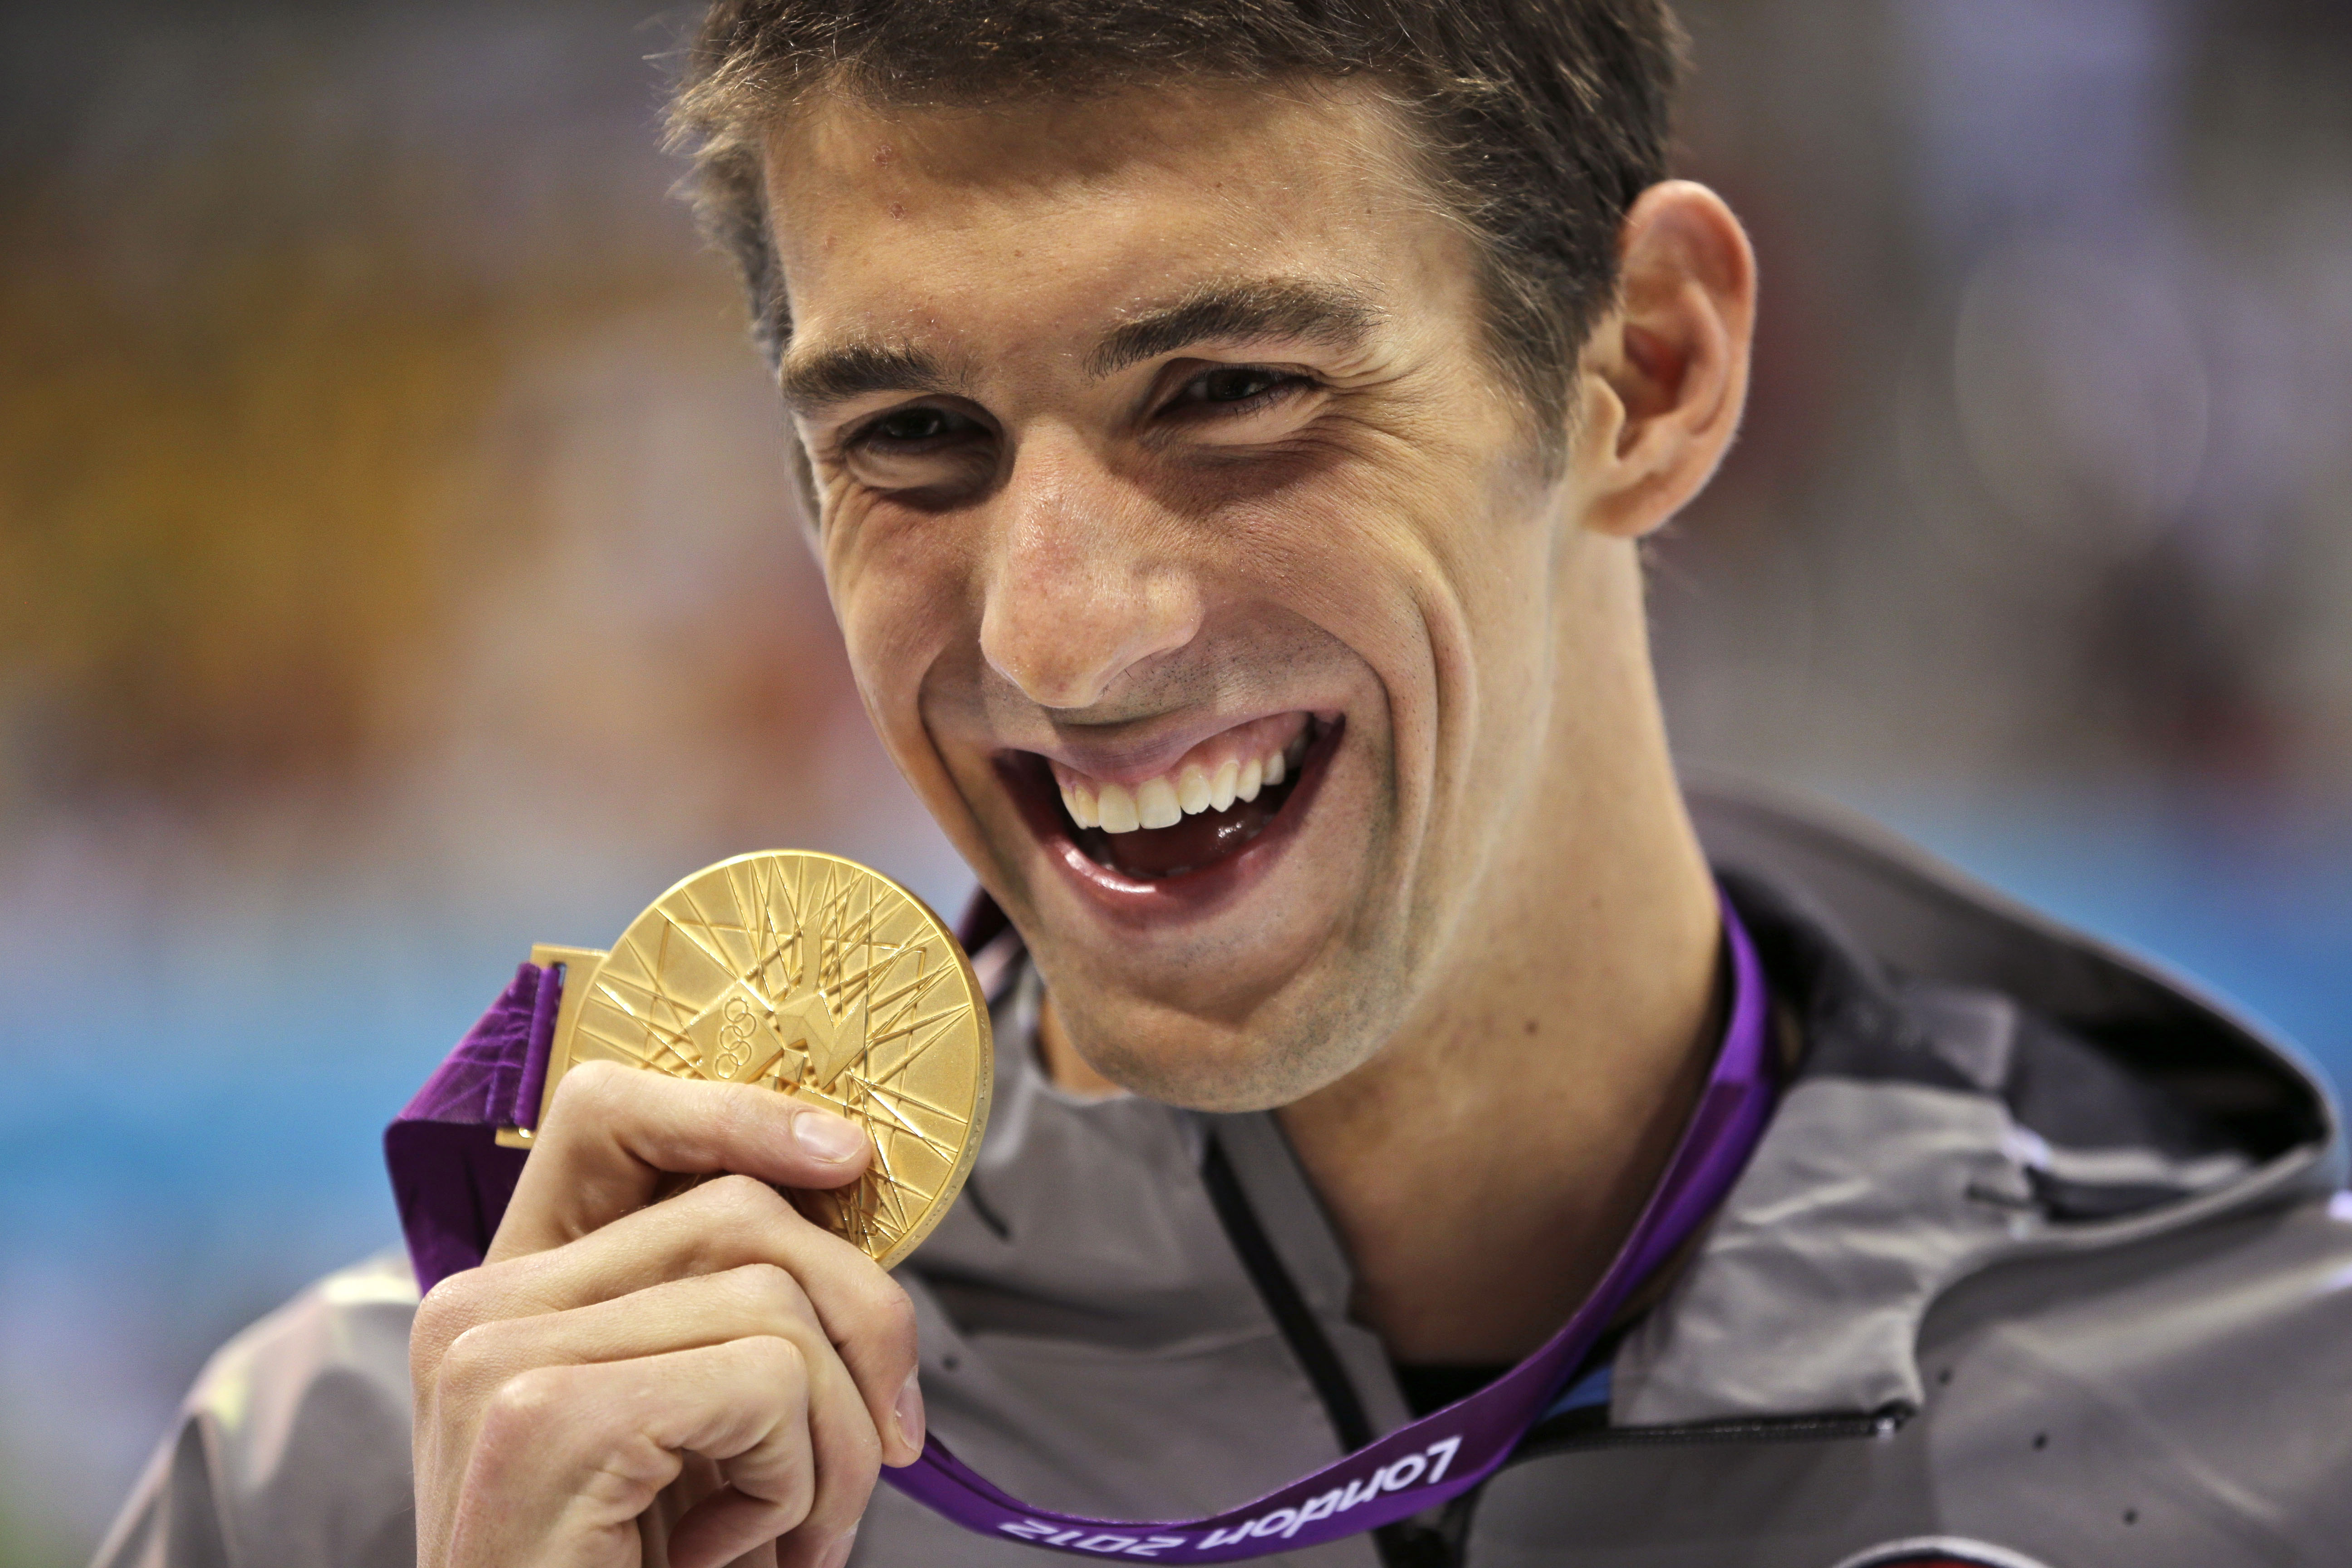 Sports Illustrated presents Michael Phelps with 'Greatest Olympian of All-Time' award